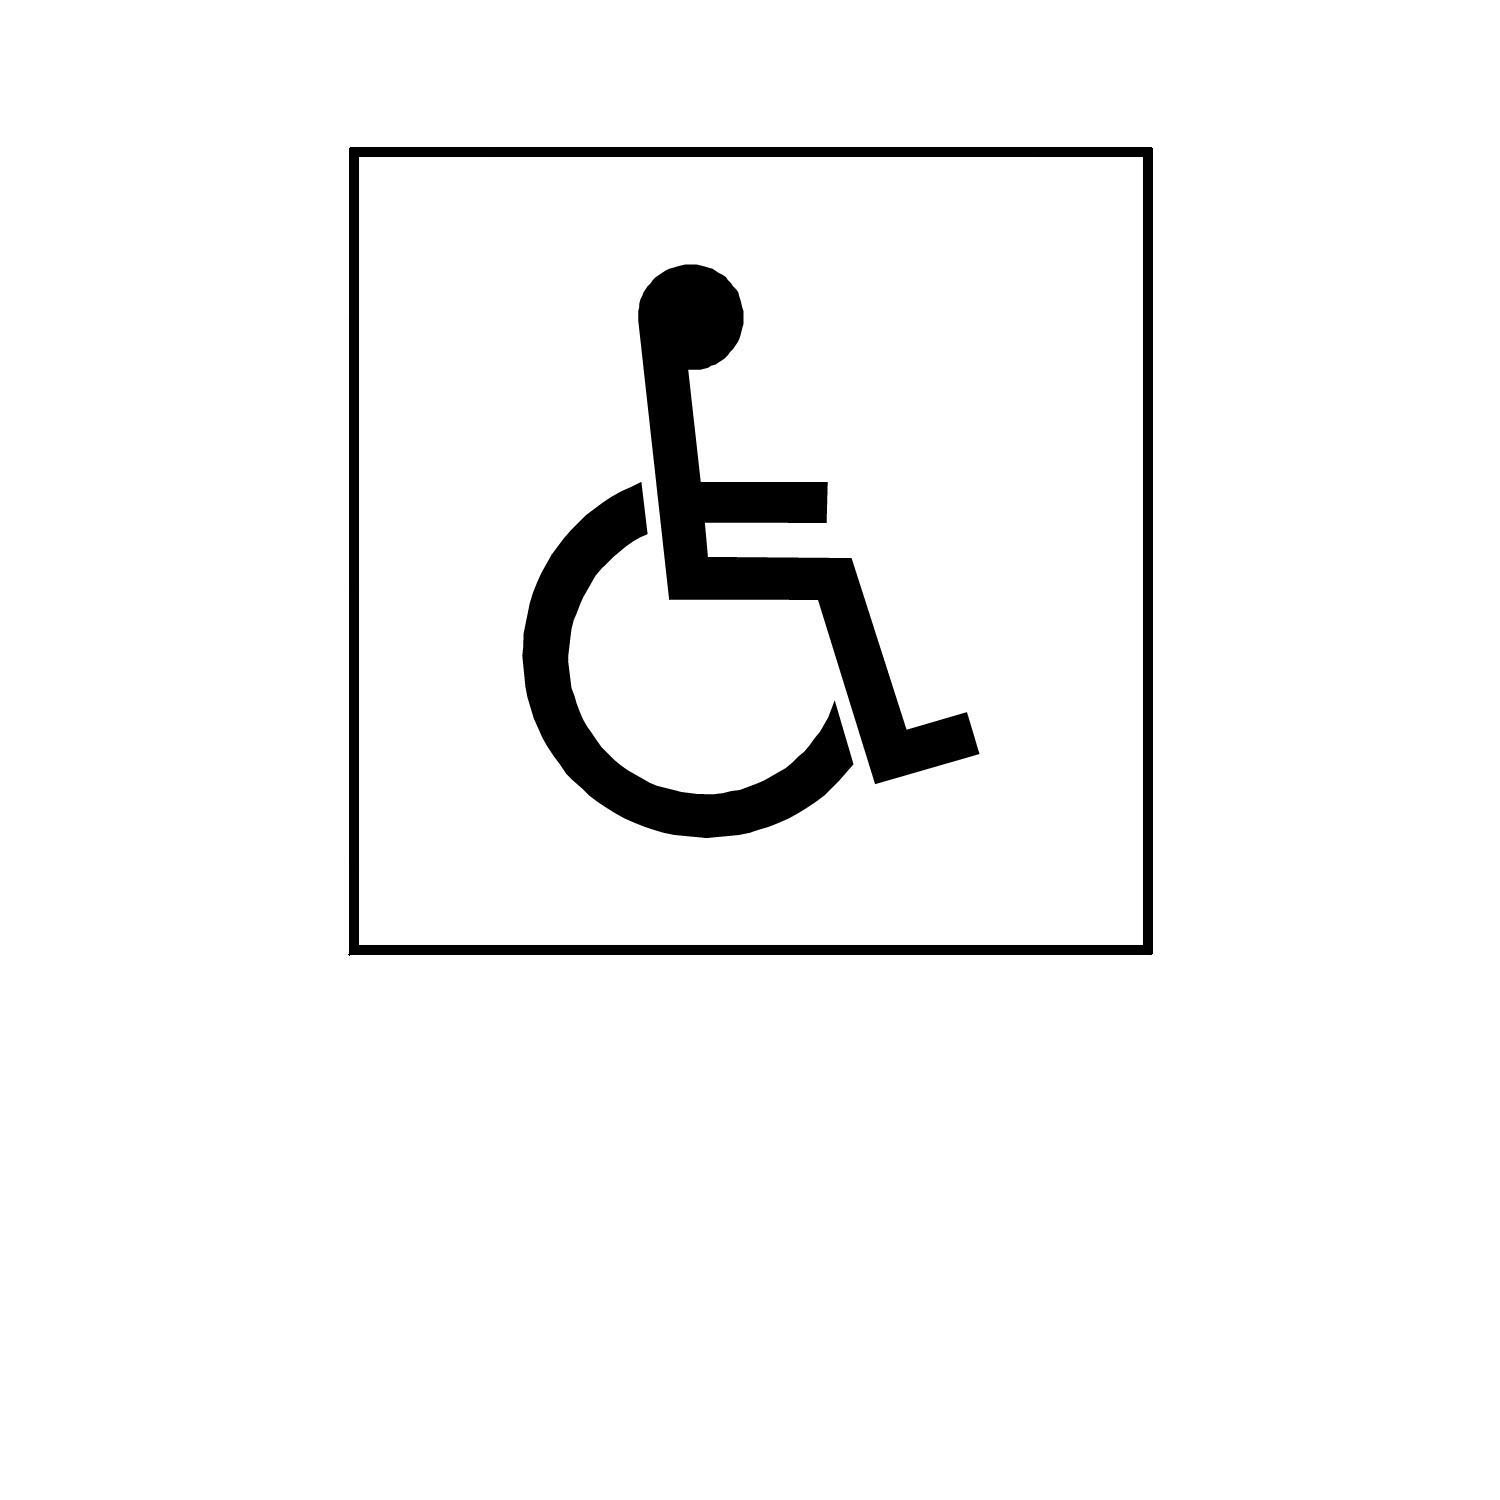 Printable Handicap Sign - Viewing Gallery